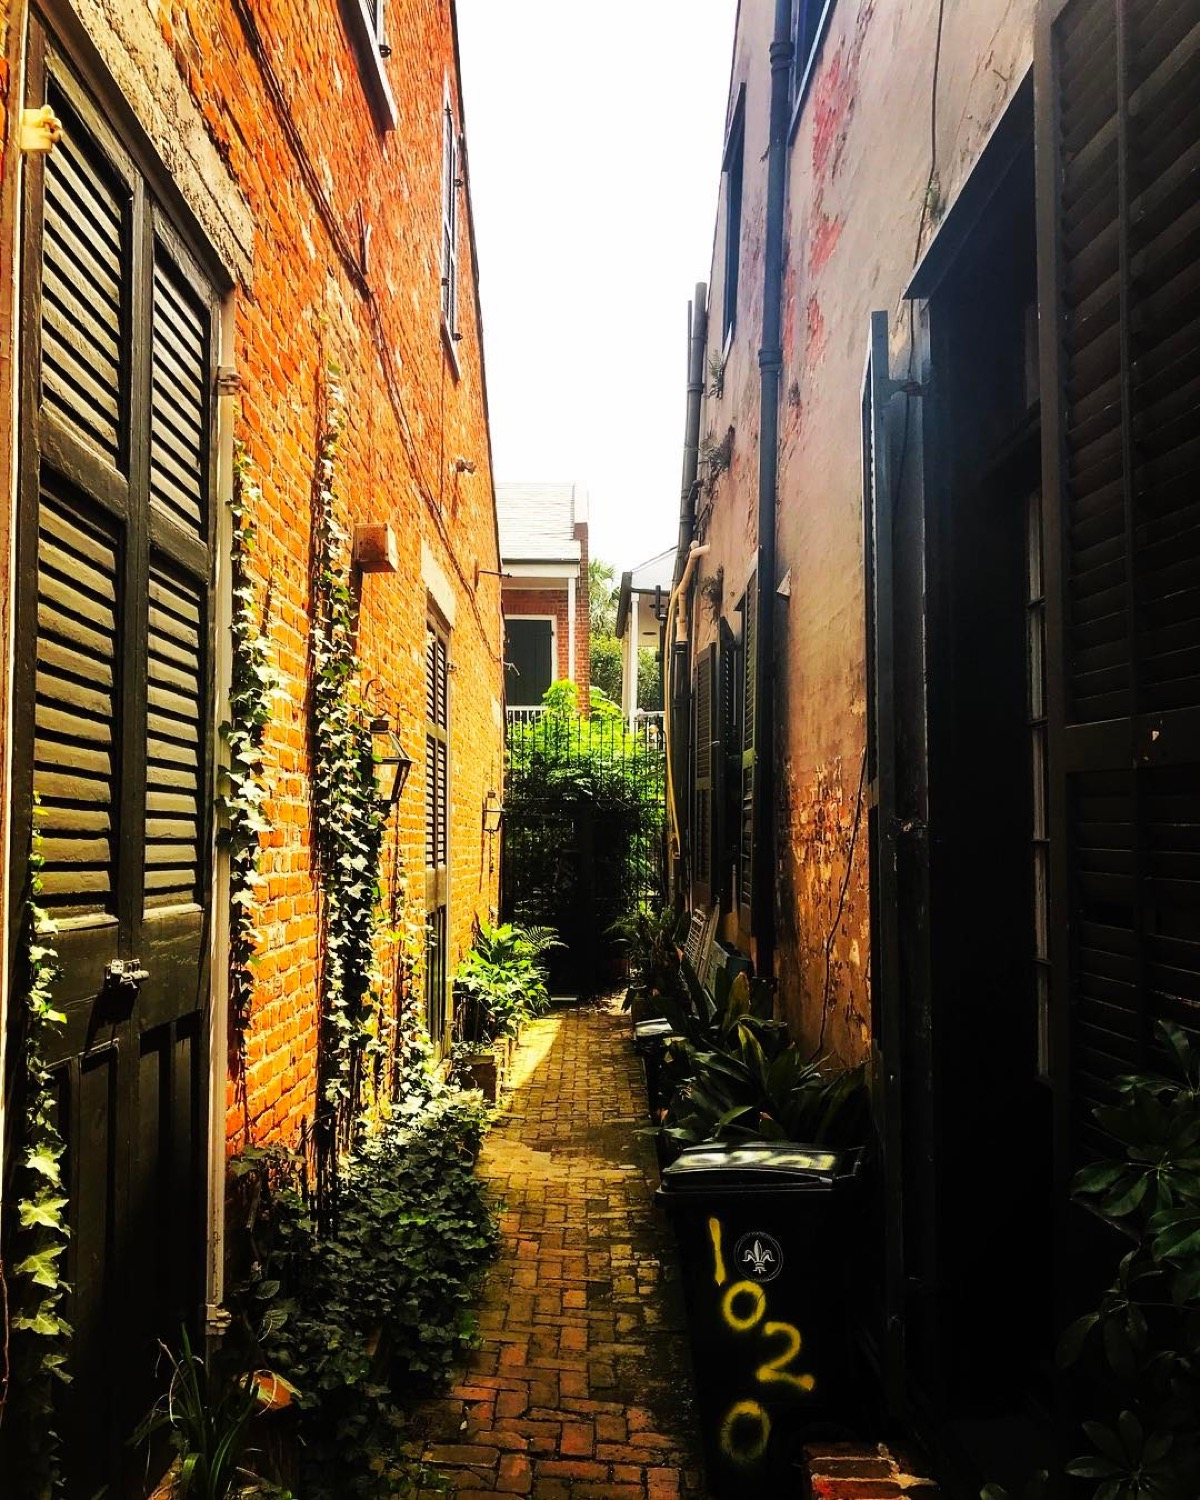 PLACE: French Quarter, New Orleans / MILES FROM CINCY: 815 / ABOUT: New Orleans' French Quarter is well known for its shenanigans, but come off-season or peer into a side alley and you'll realize this is far more than a large, glitzy outdoor cantina. / Image courtesy of Instagram user @katie_scarletttt // Published: 5.14.17